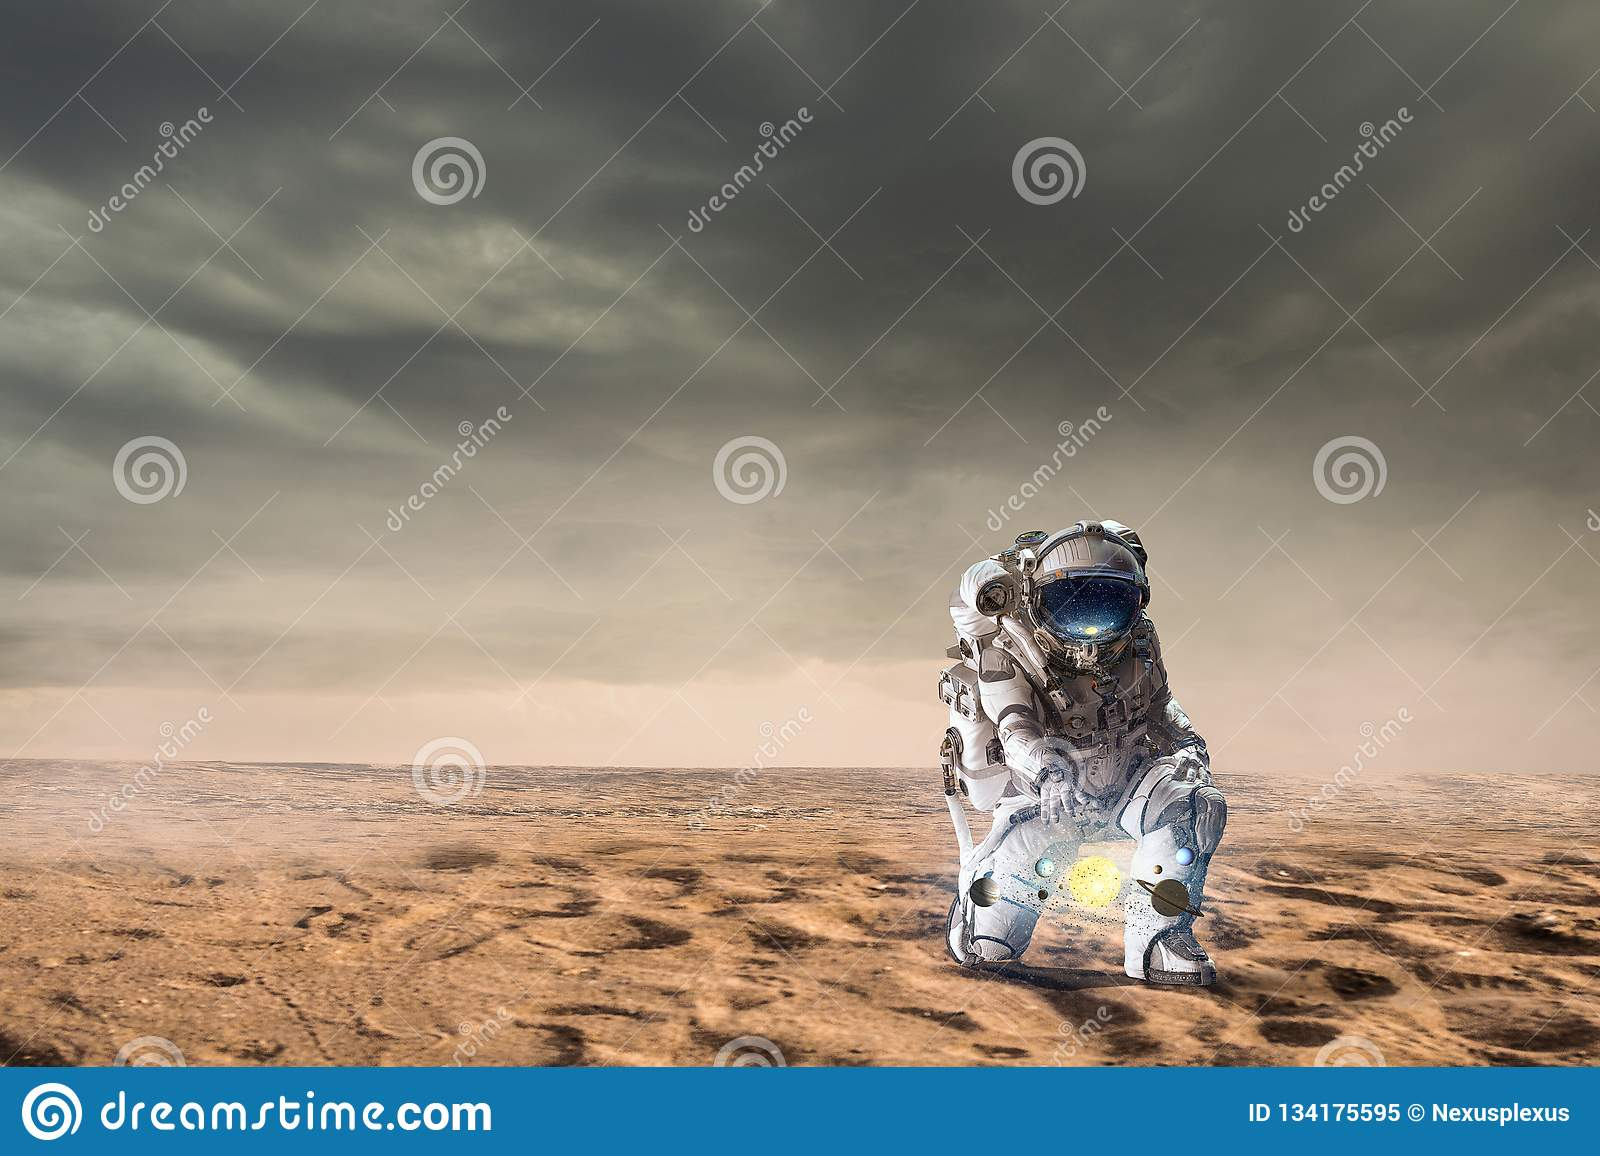 There Is Life On Other Planets. Mixed Media Stock Image ...